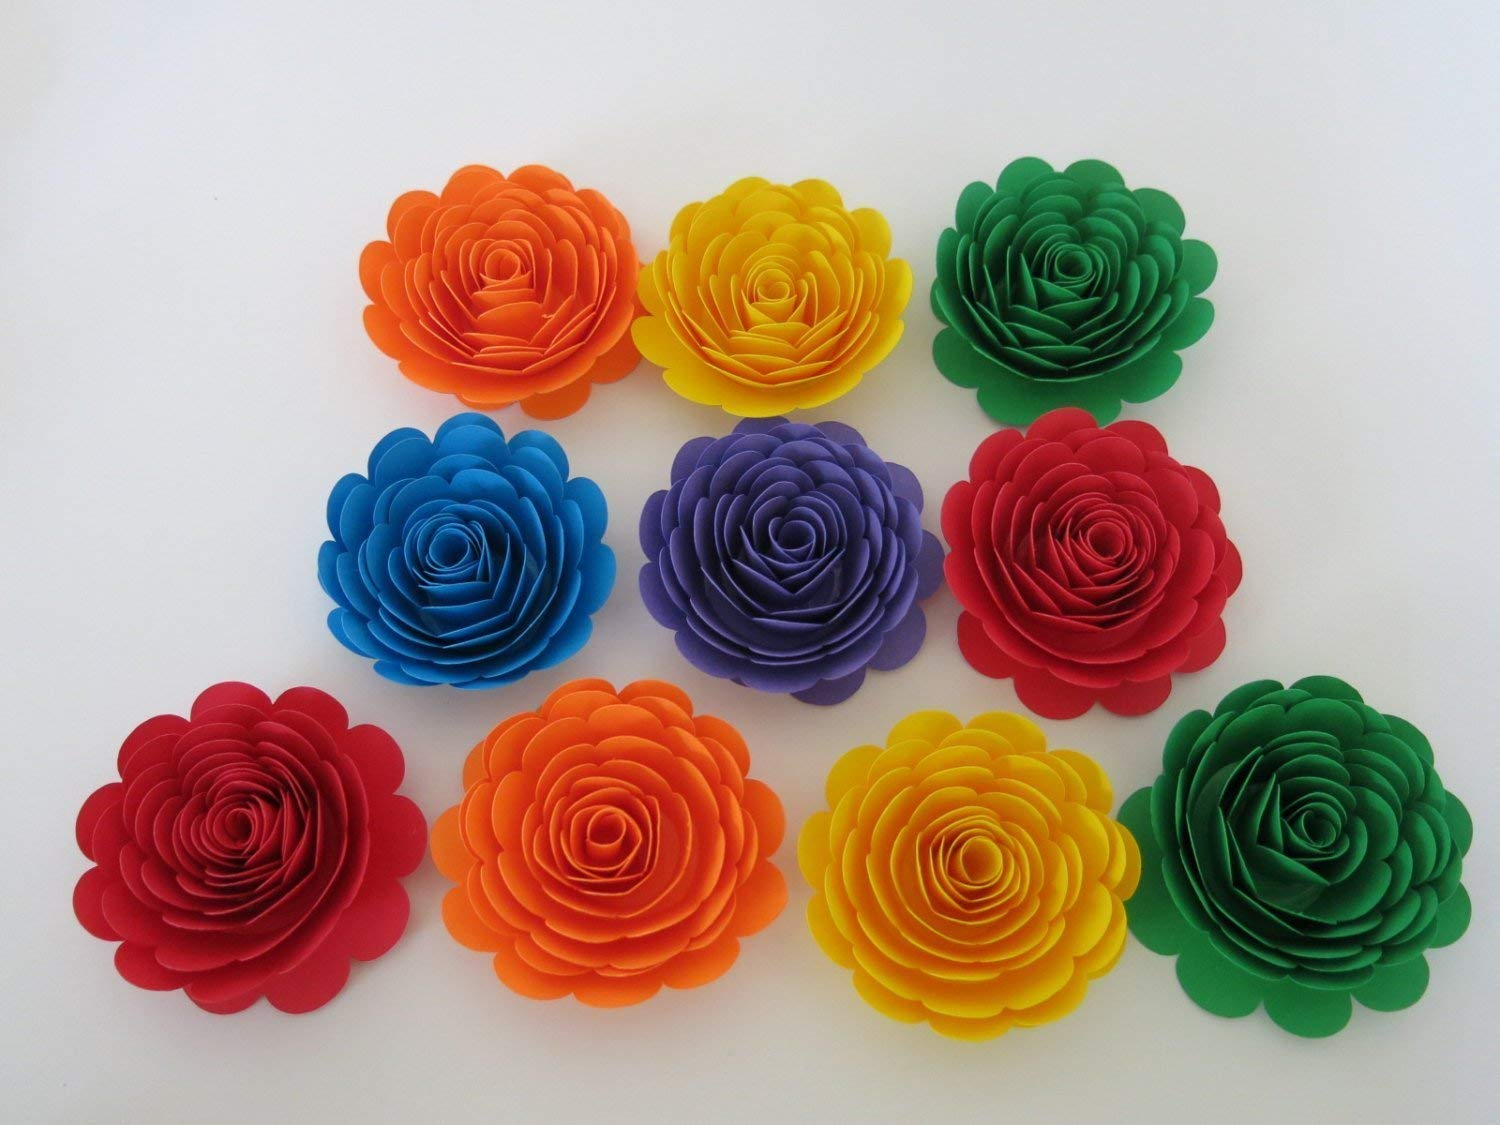 Bright Colorful Paper depot Flowers 3 Rainbow LGBT Austin Mall Inch Roses Wedding